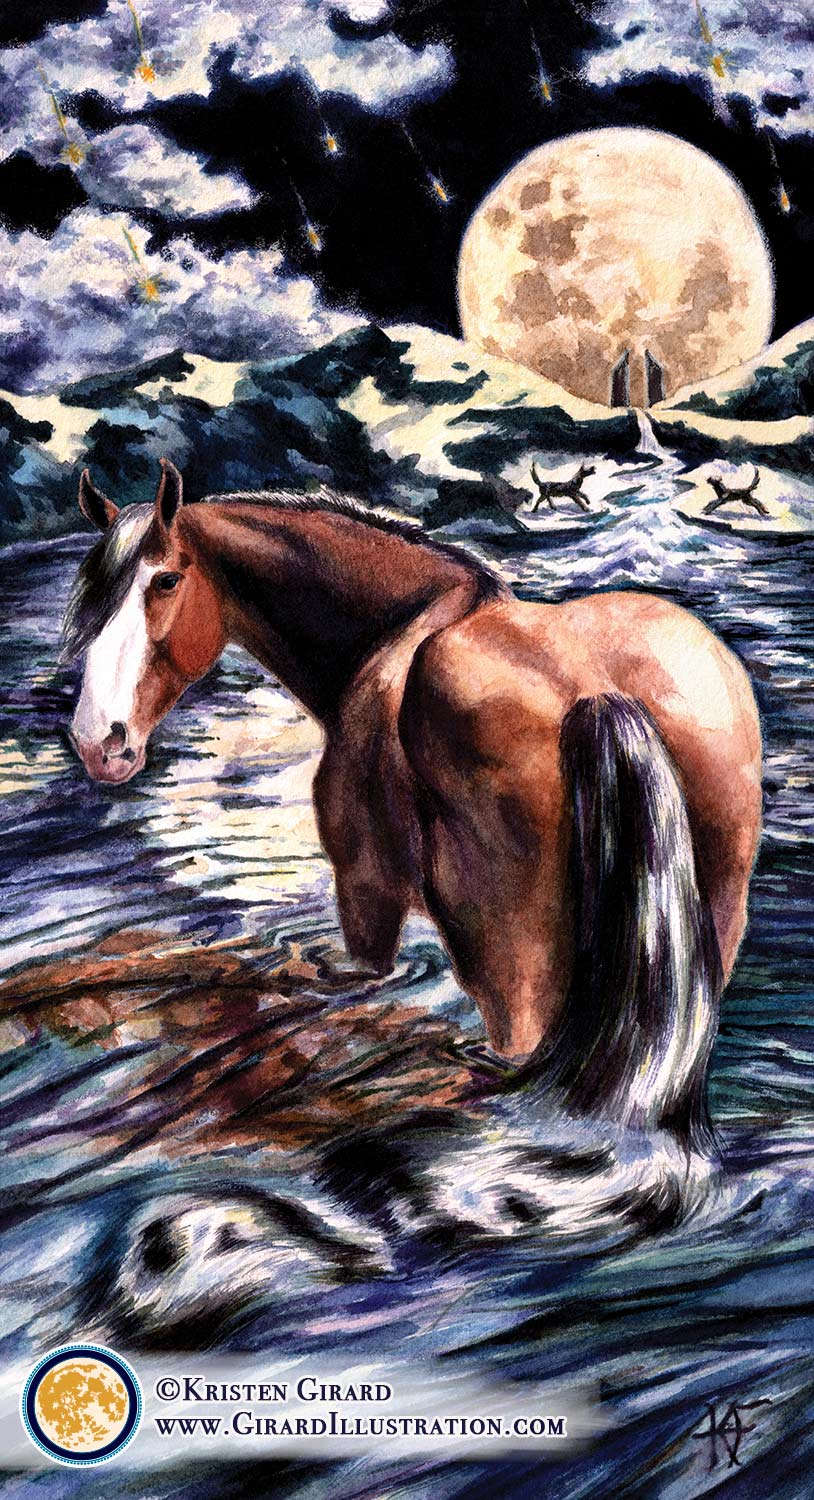 A Clydesdale draft horse with a white blaze calmly looks back at you as he wades into lake waters reflecting the full moon over head. At the far shore of the lake is a mountain range full of shadows and light. Shooting stars fall in bright streaks against the dark night sky. Watercolor painting. •The Moon © Kristen Girard•